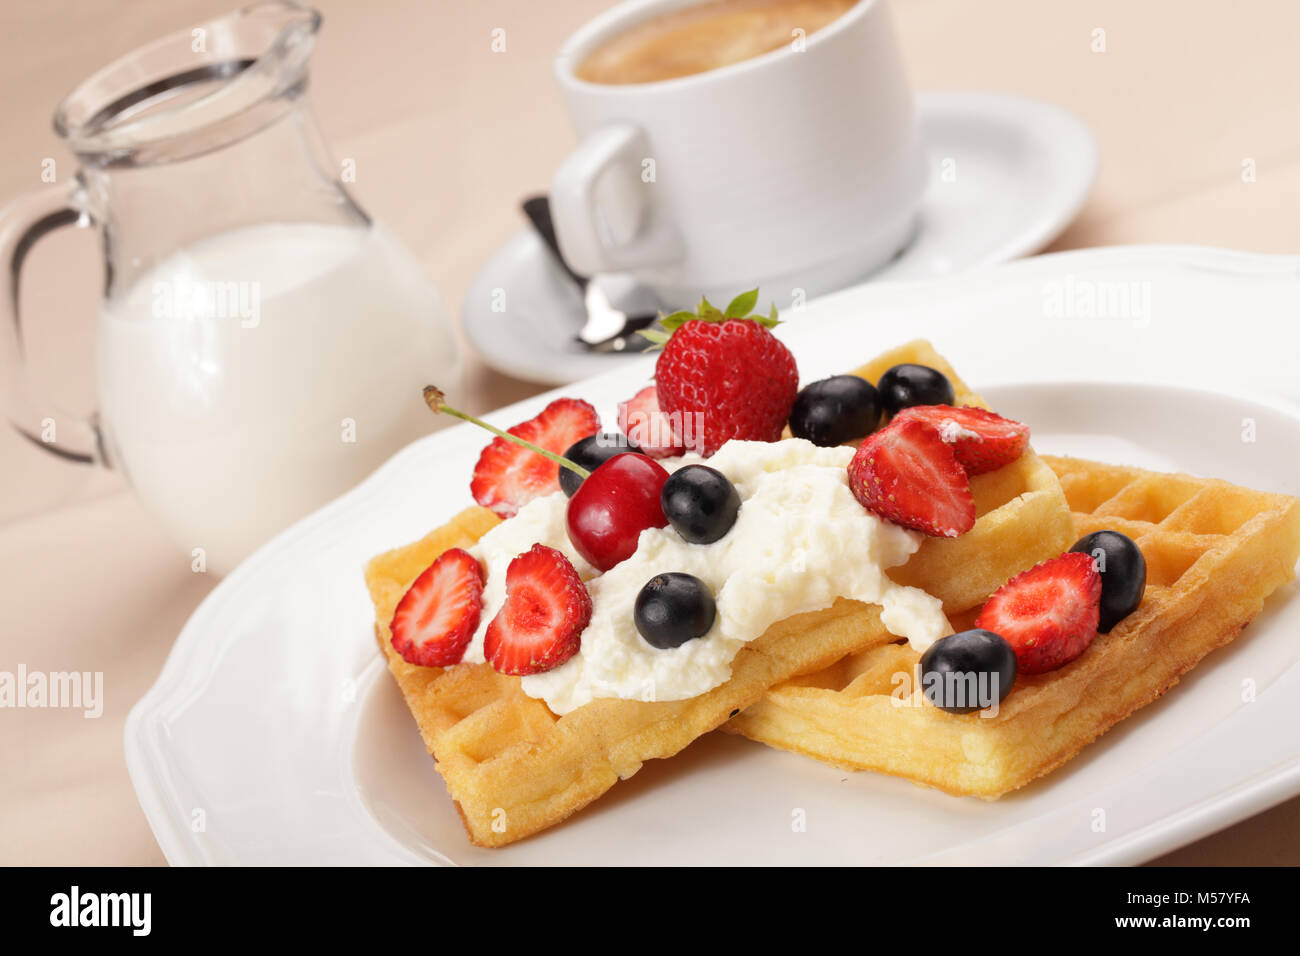 Belgian waffles with whipped cream, strawberry, cherry and blueberry - Stock Image